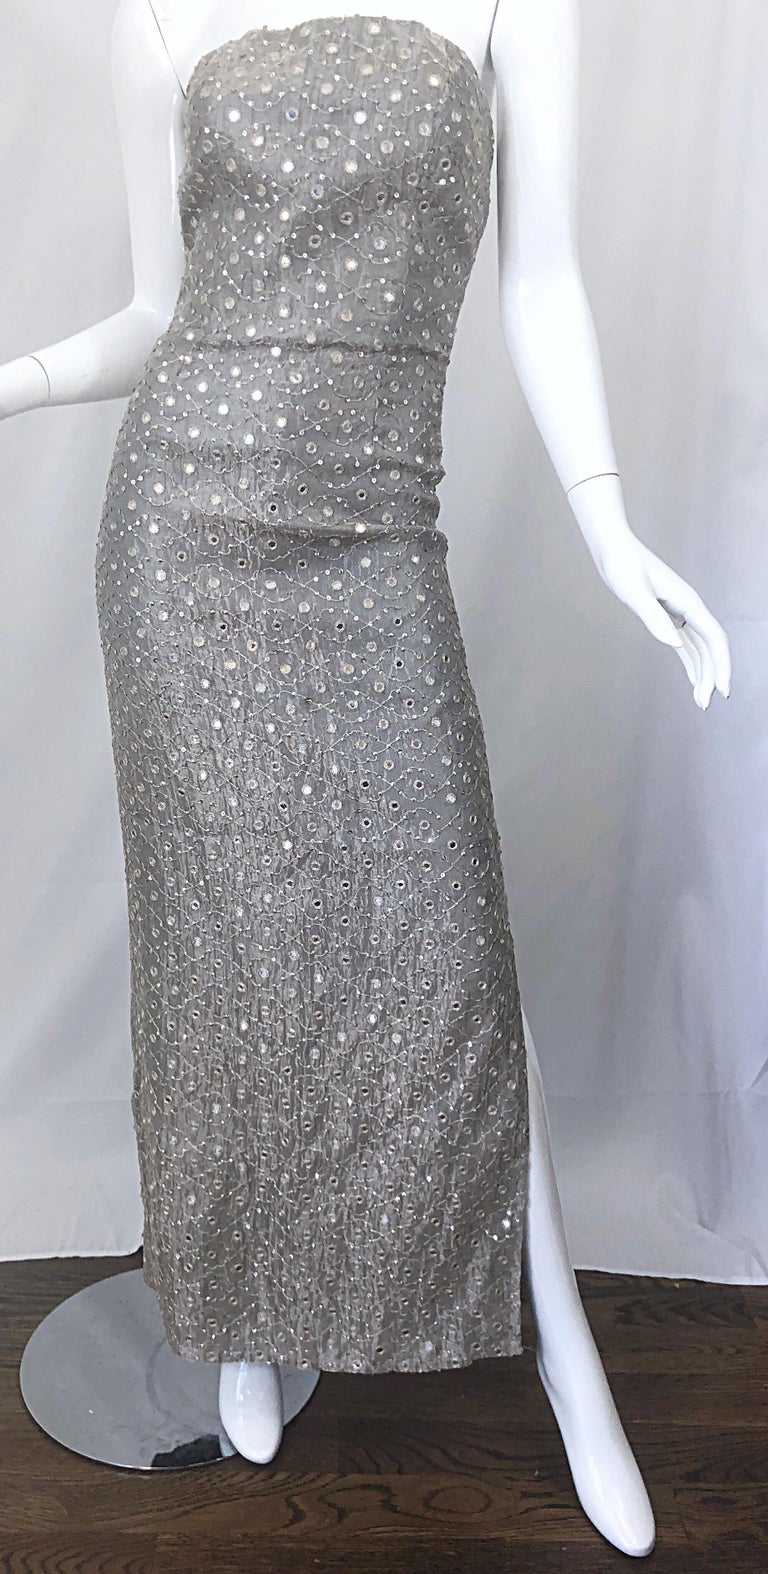 1990s Silver Grey Mirrored Sequins Size 6 Strapless Silk Vintage Gown Dress For Sale 4